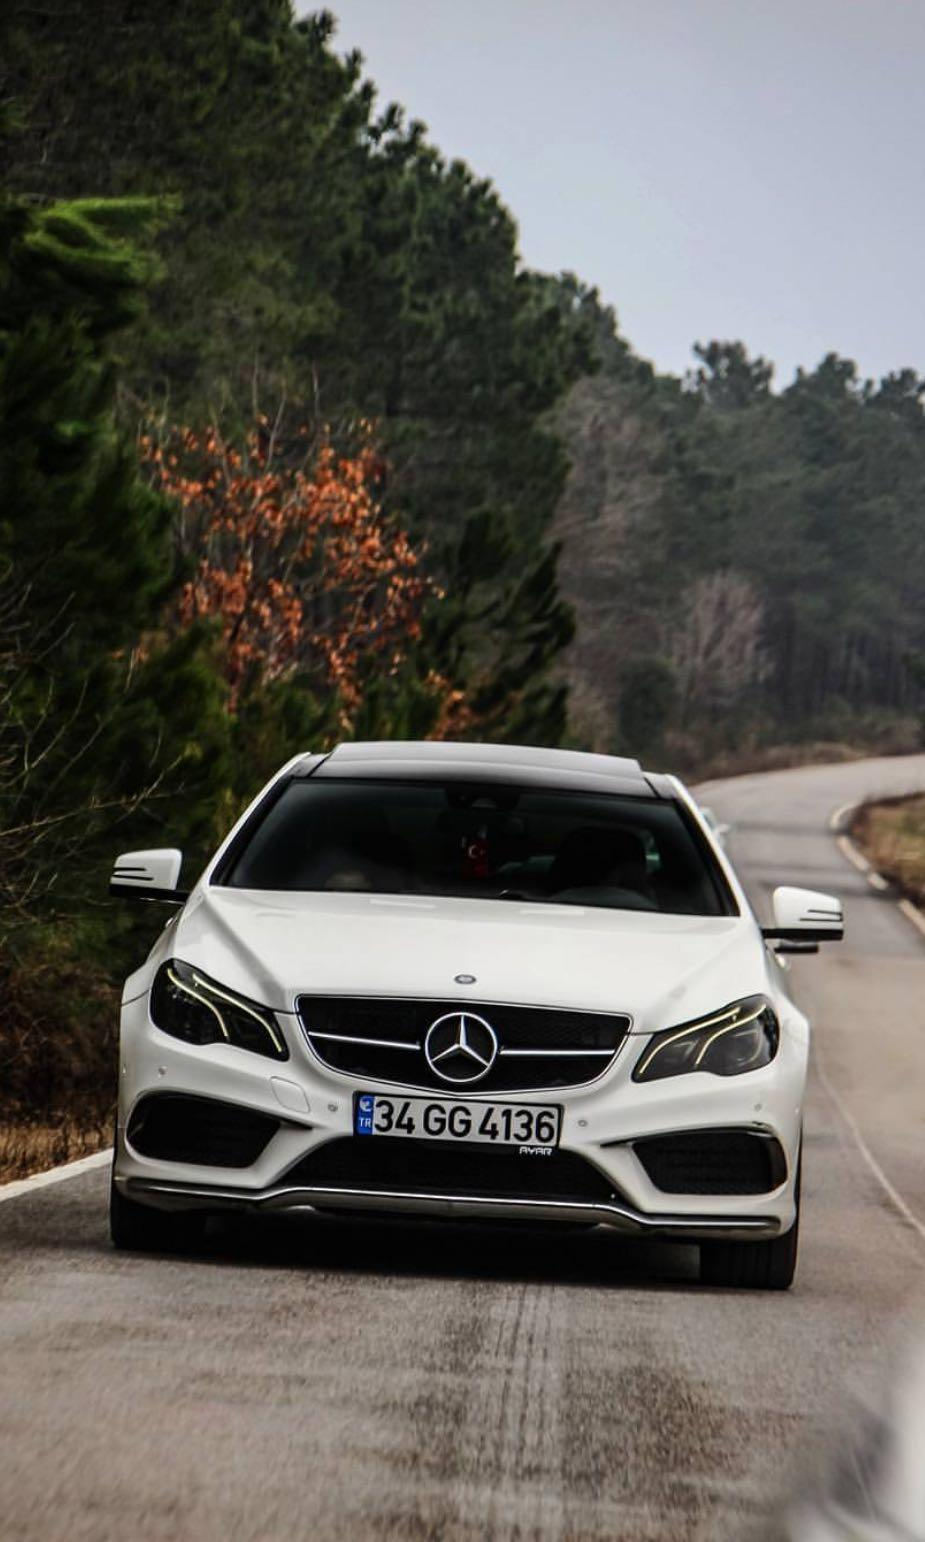 Mercedes E Coupe w207, Car Accessories, Accessories on Carousell